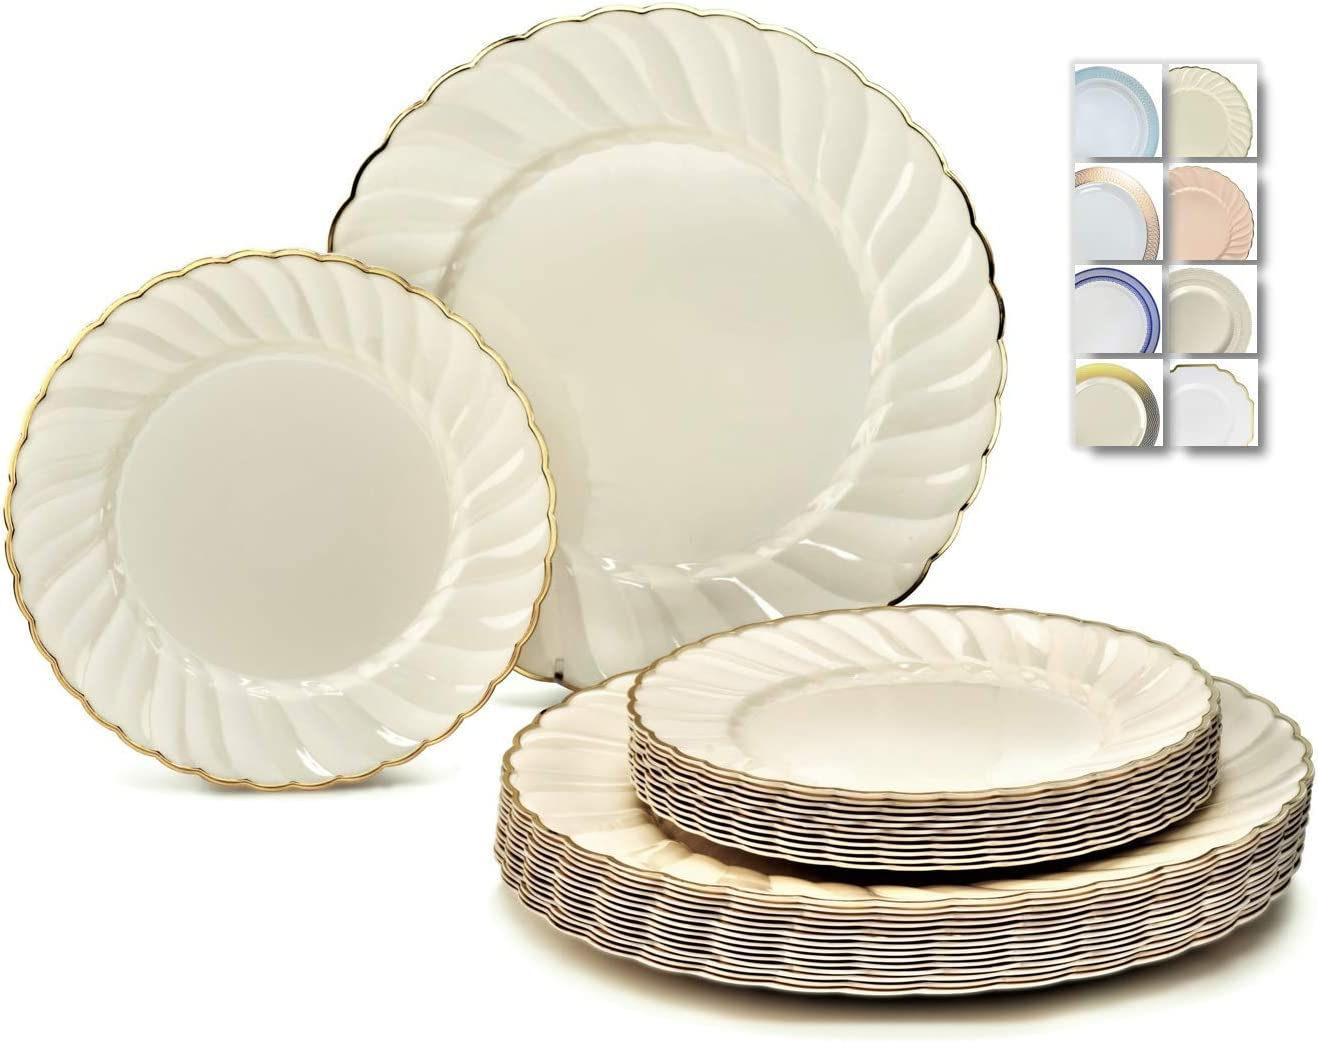 """"""" OCCASIONS """" 240 Plates Pack,(120 Guests) Vintage Wedding Party Disposable Plastic Plates Set -120 x 10.25'' Dinner + 120 x 7.5'' Salad / Dessert (Blossom Ivory / Gold)"""